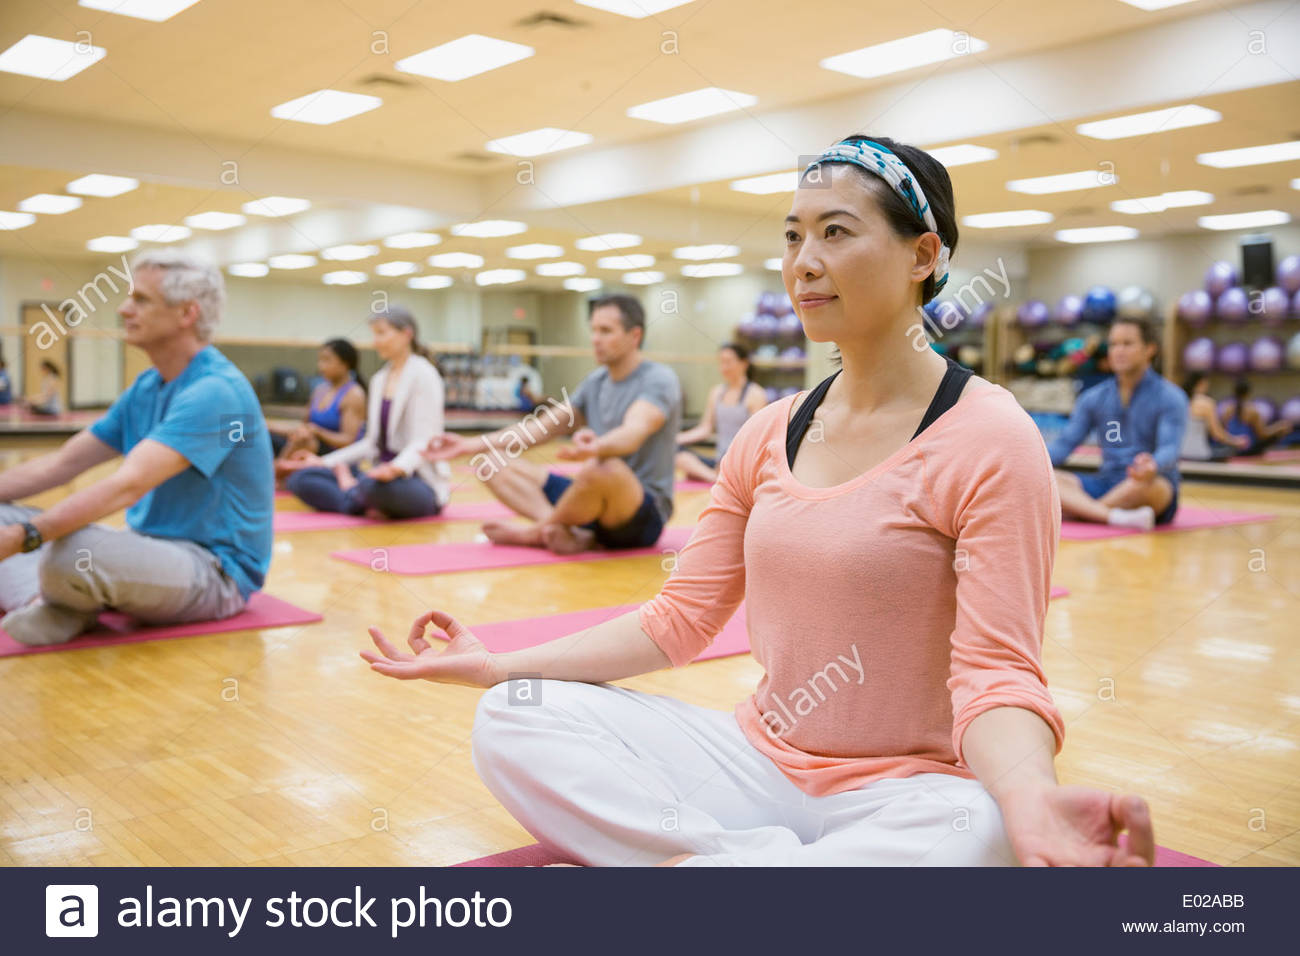 Group in lotus position in yoga class - Stock Image